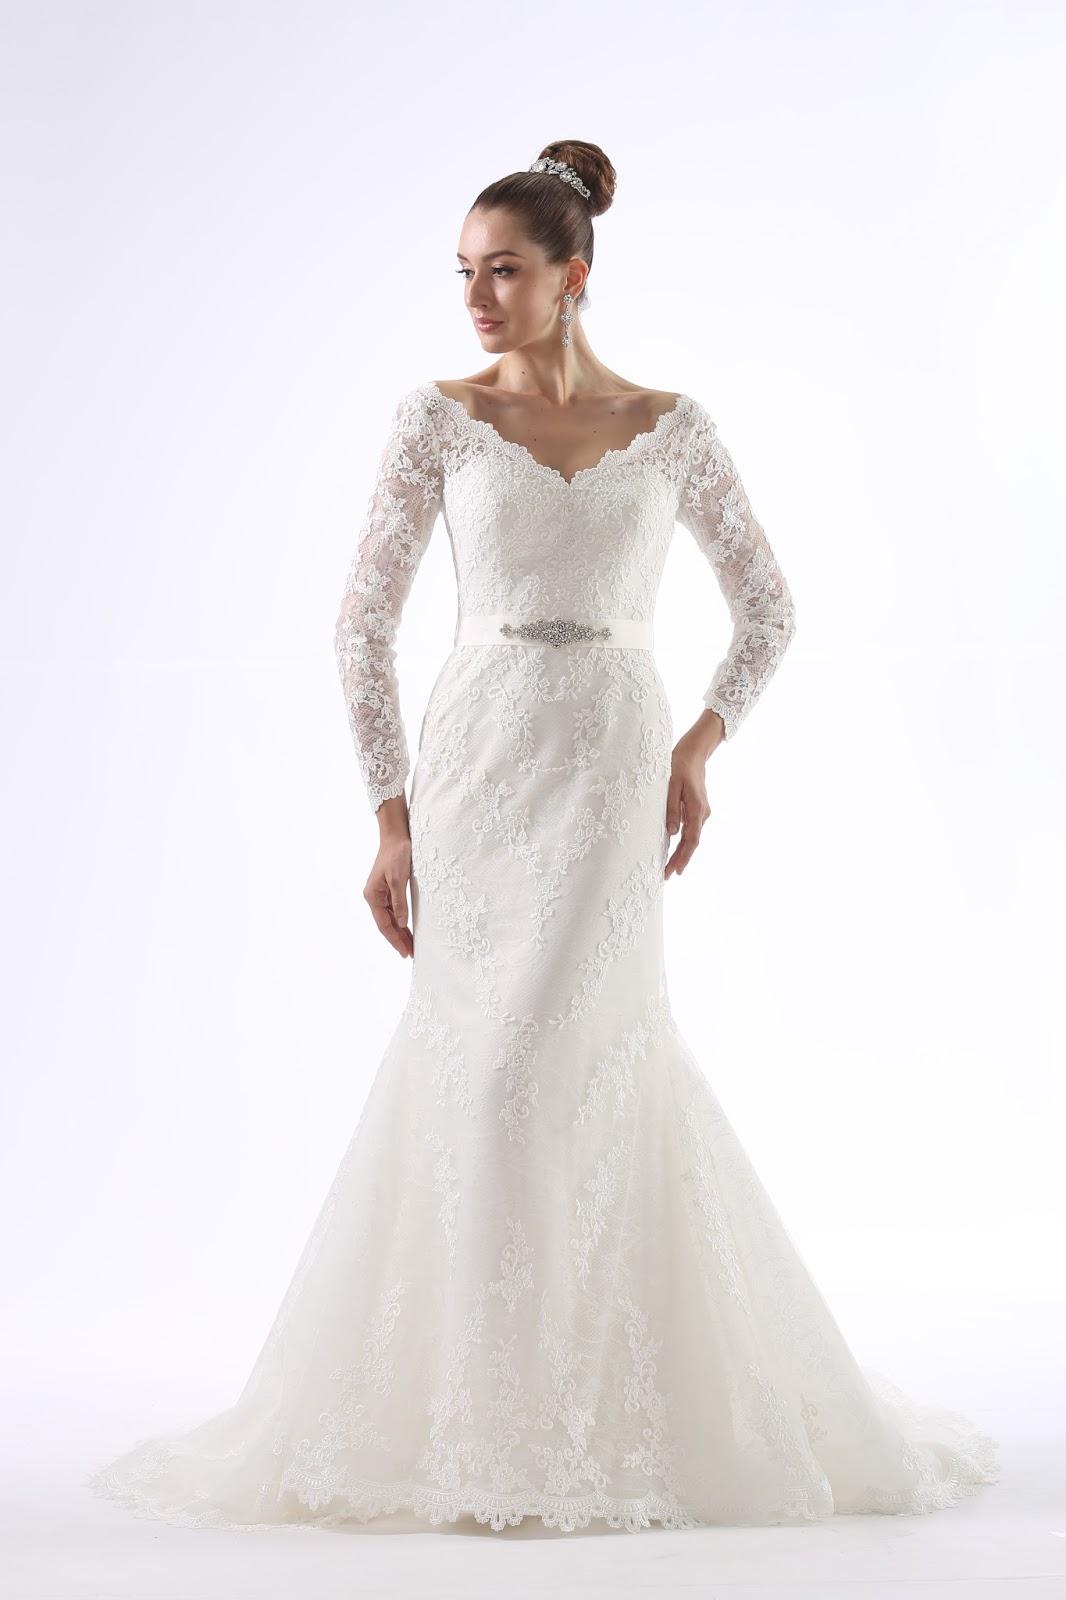 Bride Gowns Wedding Dresses For Mature Brides